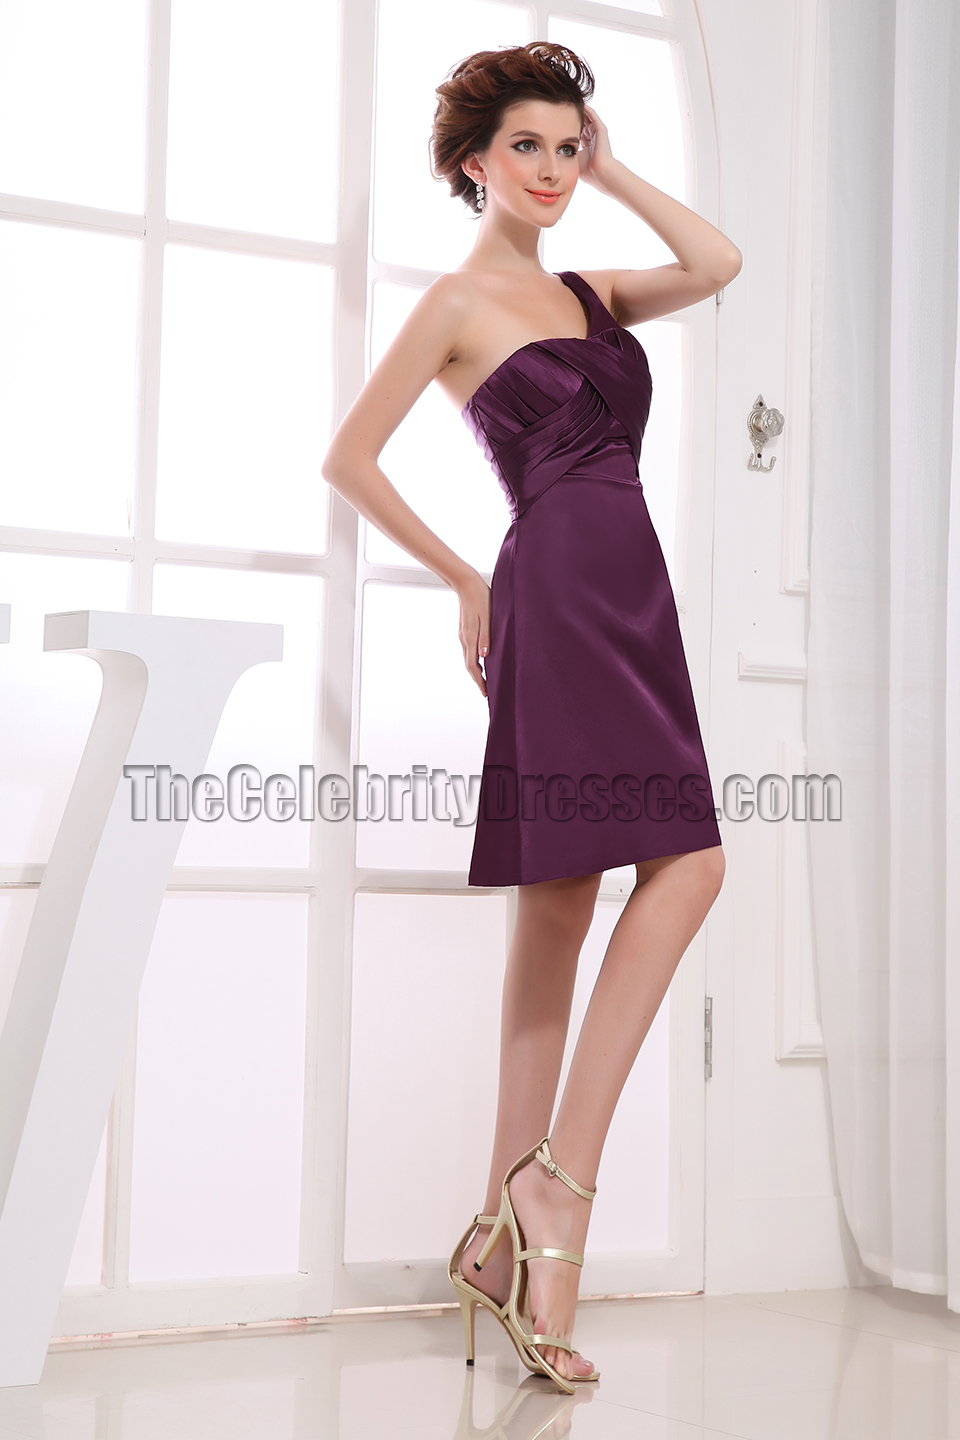 Gorgeous grape one shoulder cocktail dress bridesmaid dresses gorgeous grape one shoulder cocktail dress bridesmaid dresses thecelebritydresses ombrellifo Image collections